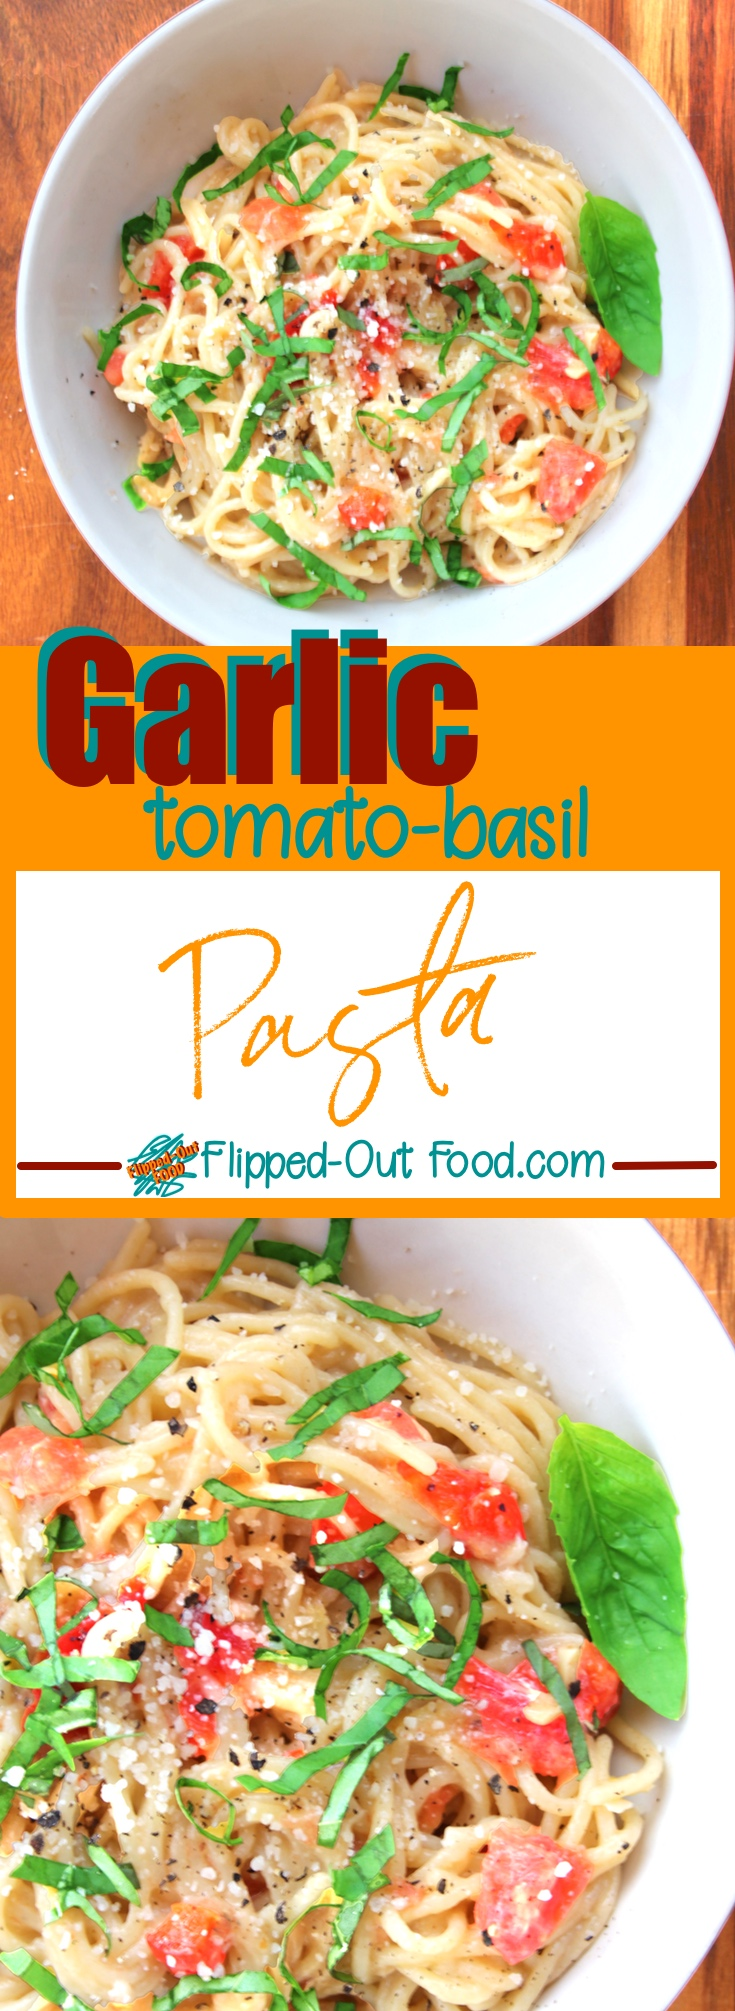 Easy Garlic-Tomato-Basil Pasta is done <25 minutes. The pasta finishes cooking right in the light sauce, made creamy with pasta water and Romano cheese. #quickdinner #easydinner #italianfood #pasta #tomato #basil #garlic